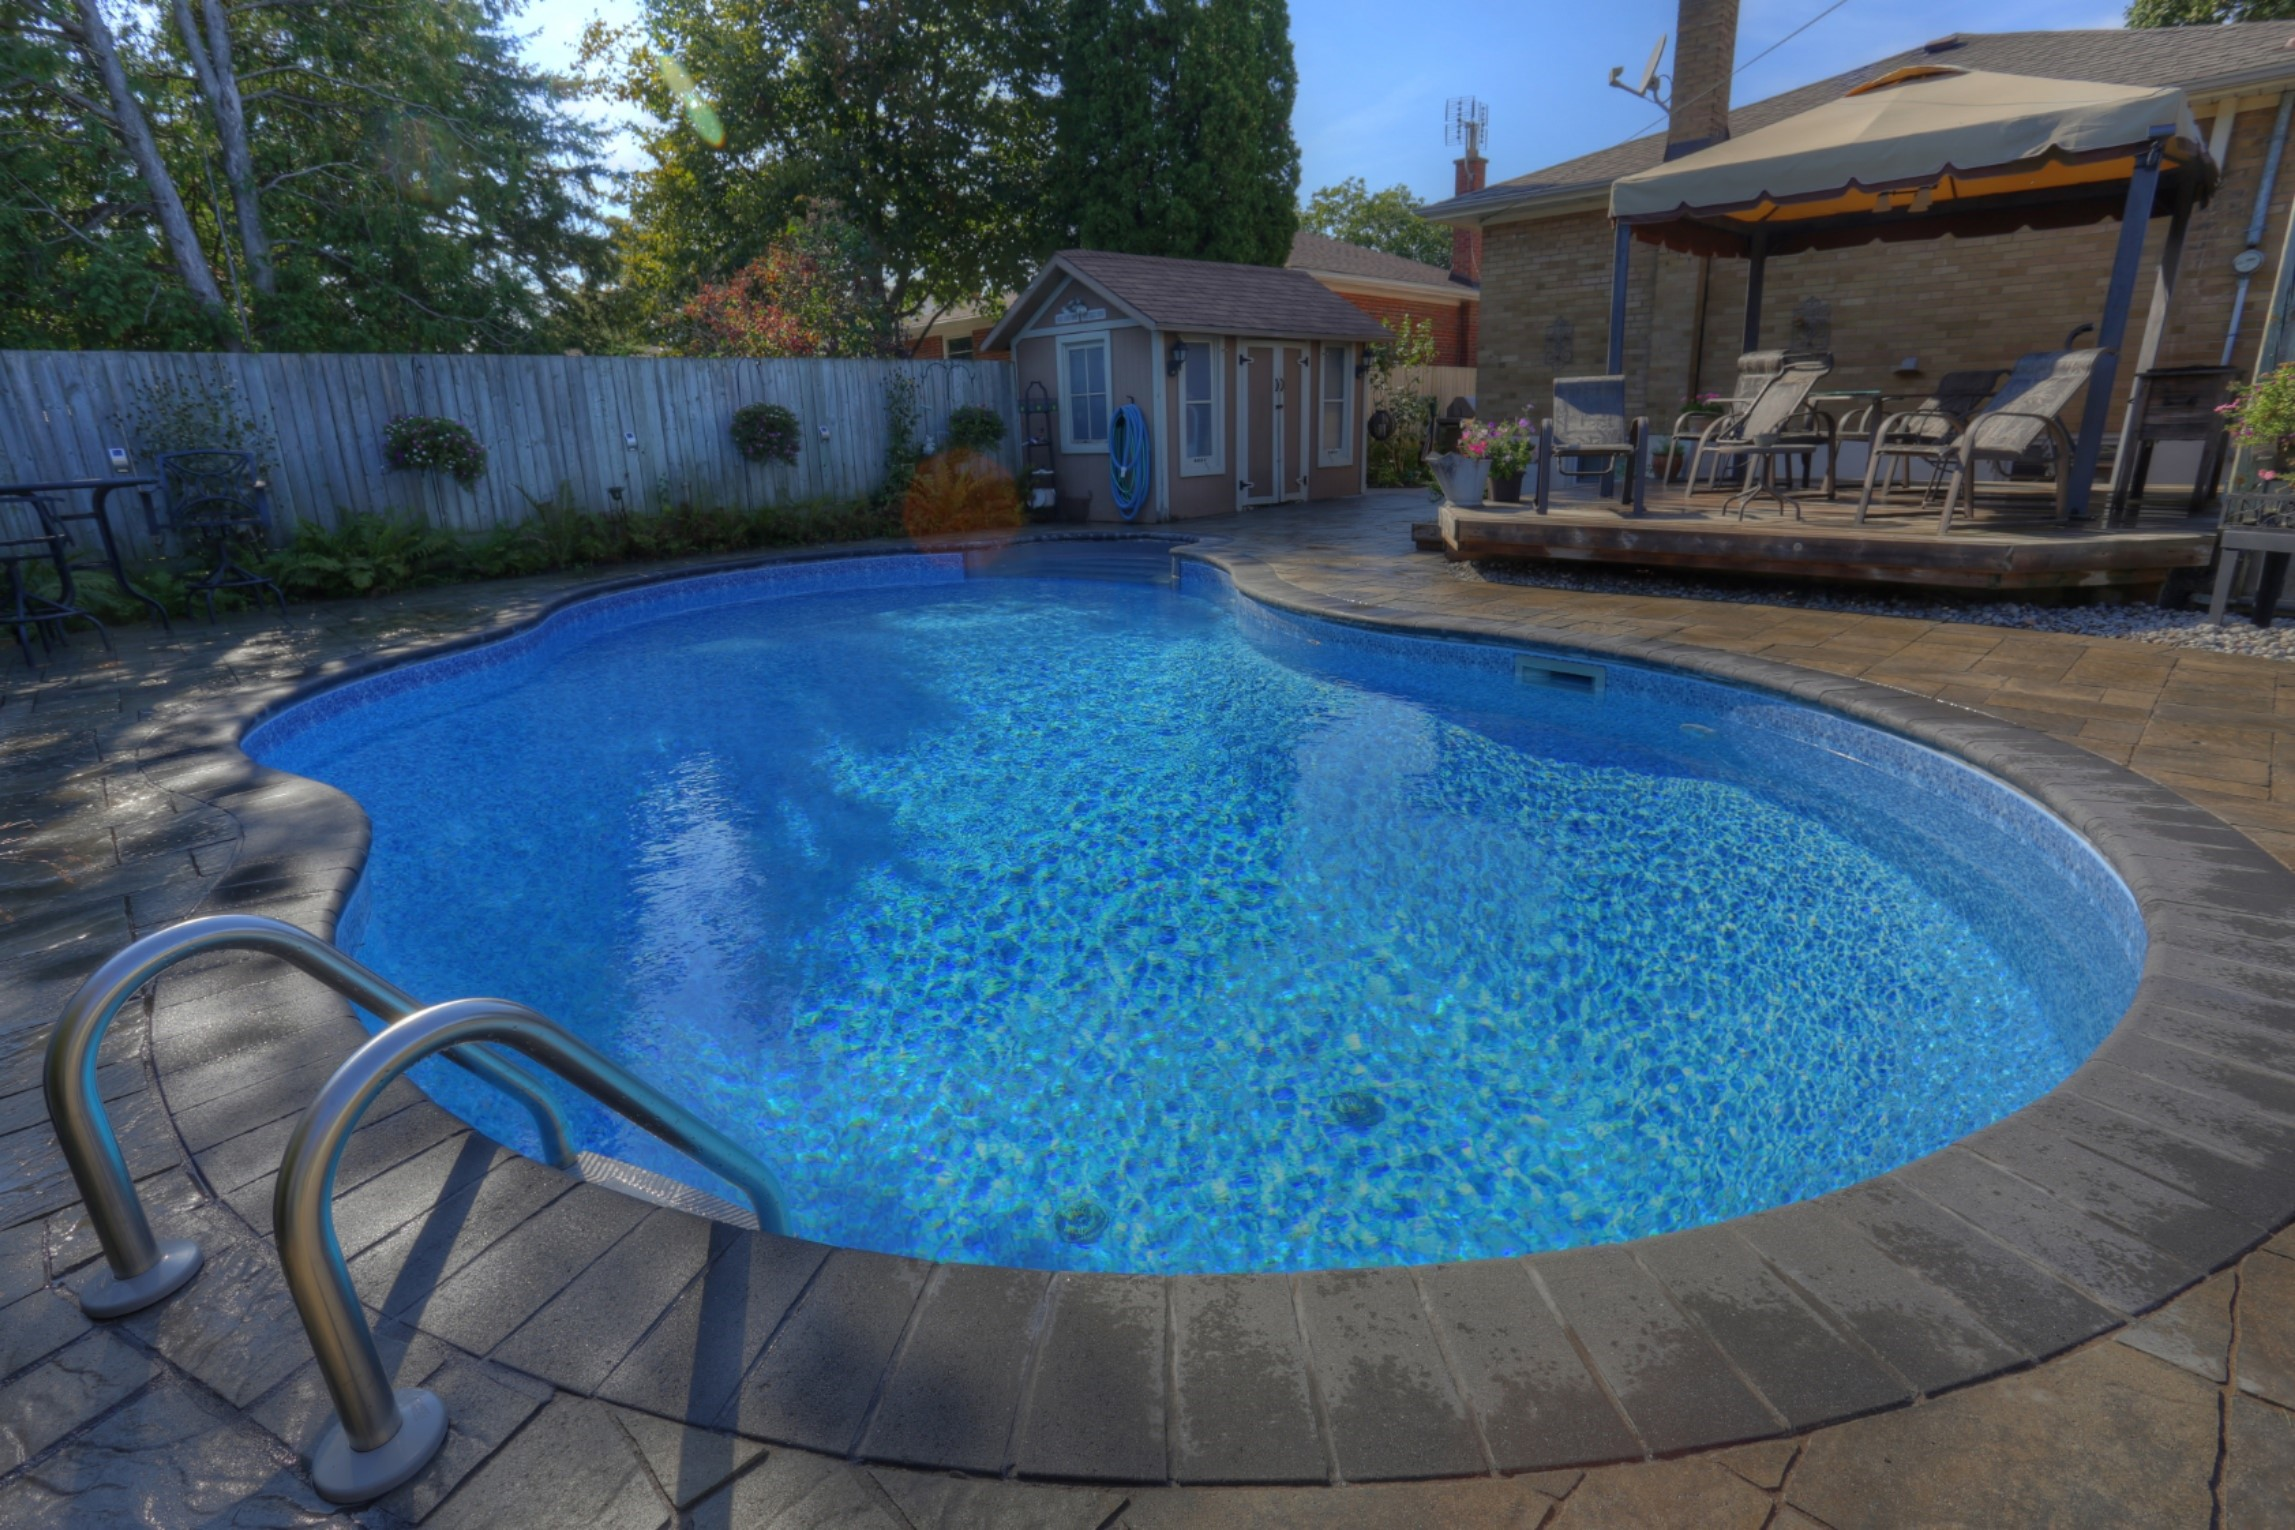 New construction mirage pool services for Swimming pool construction company